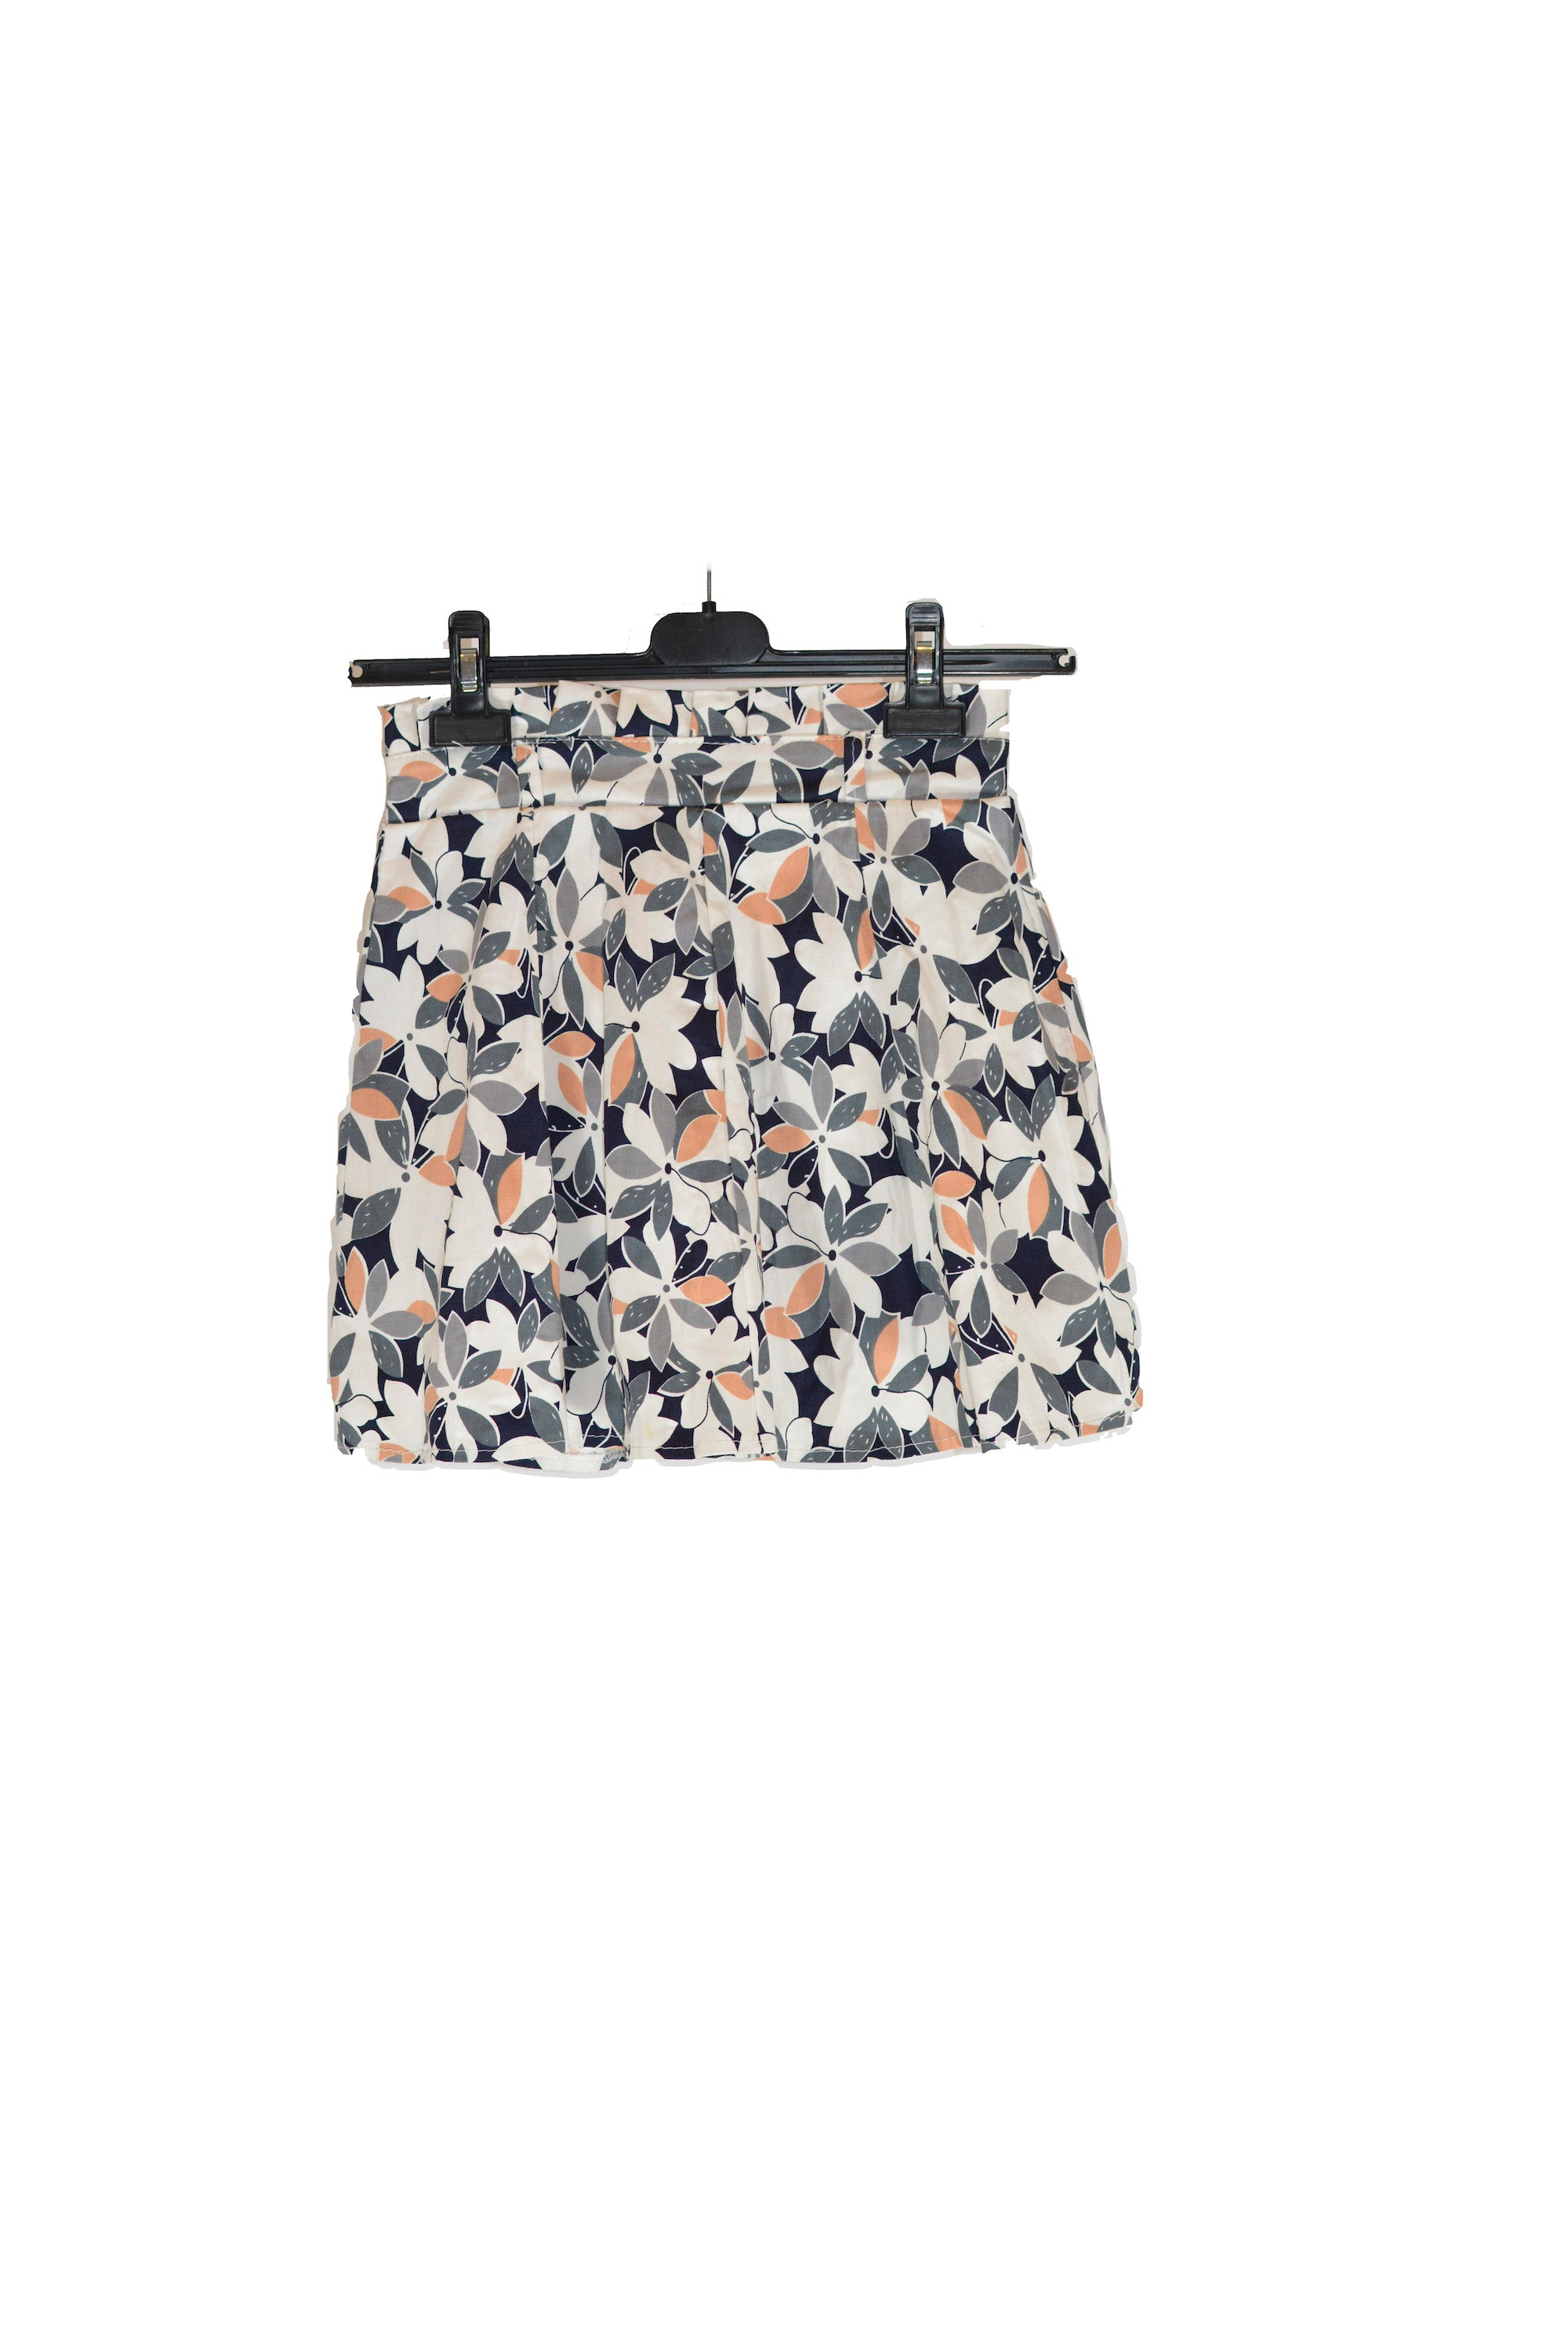 Grey/Pink Pleated Floral Skirt